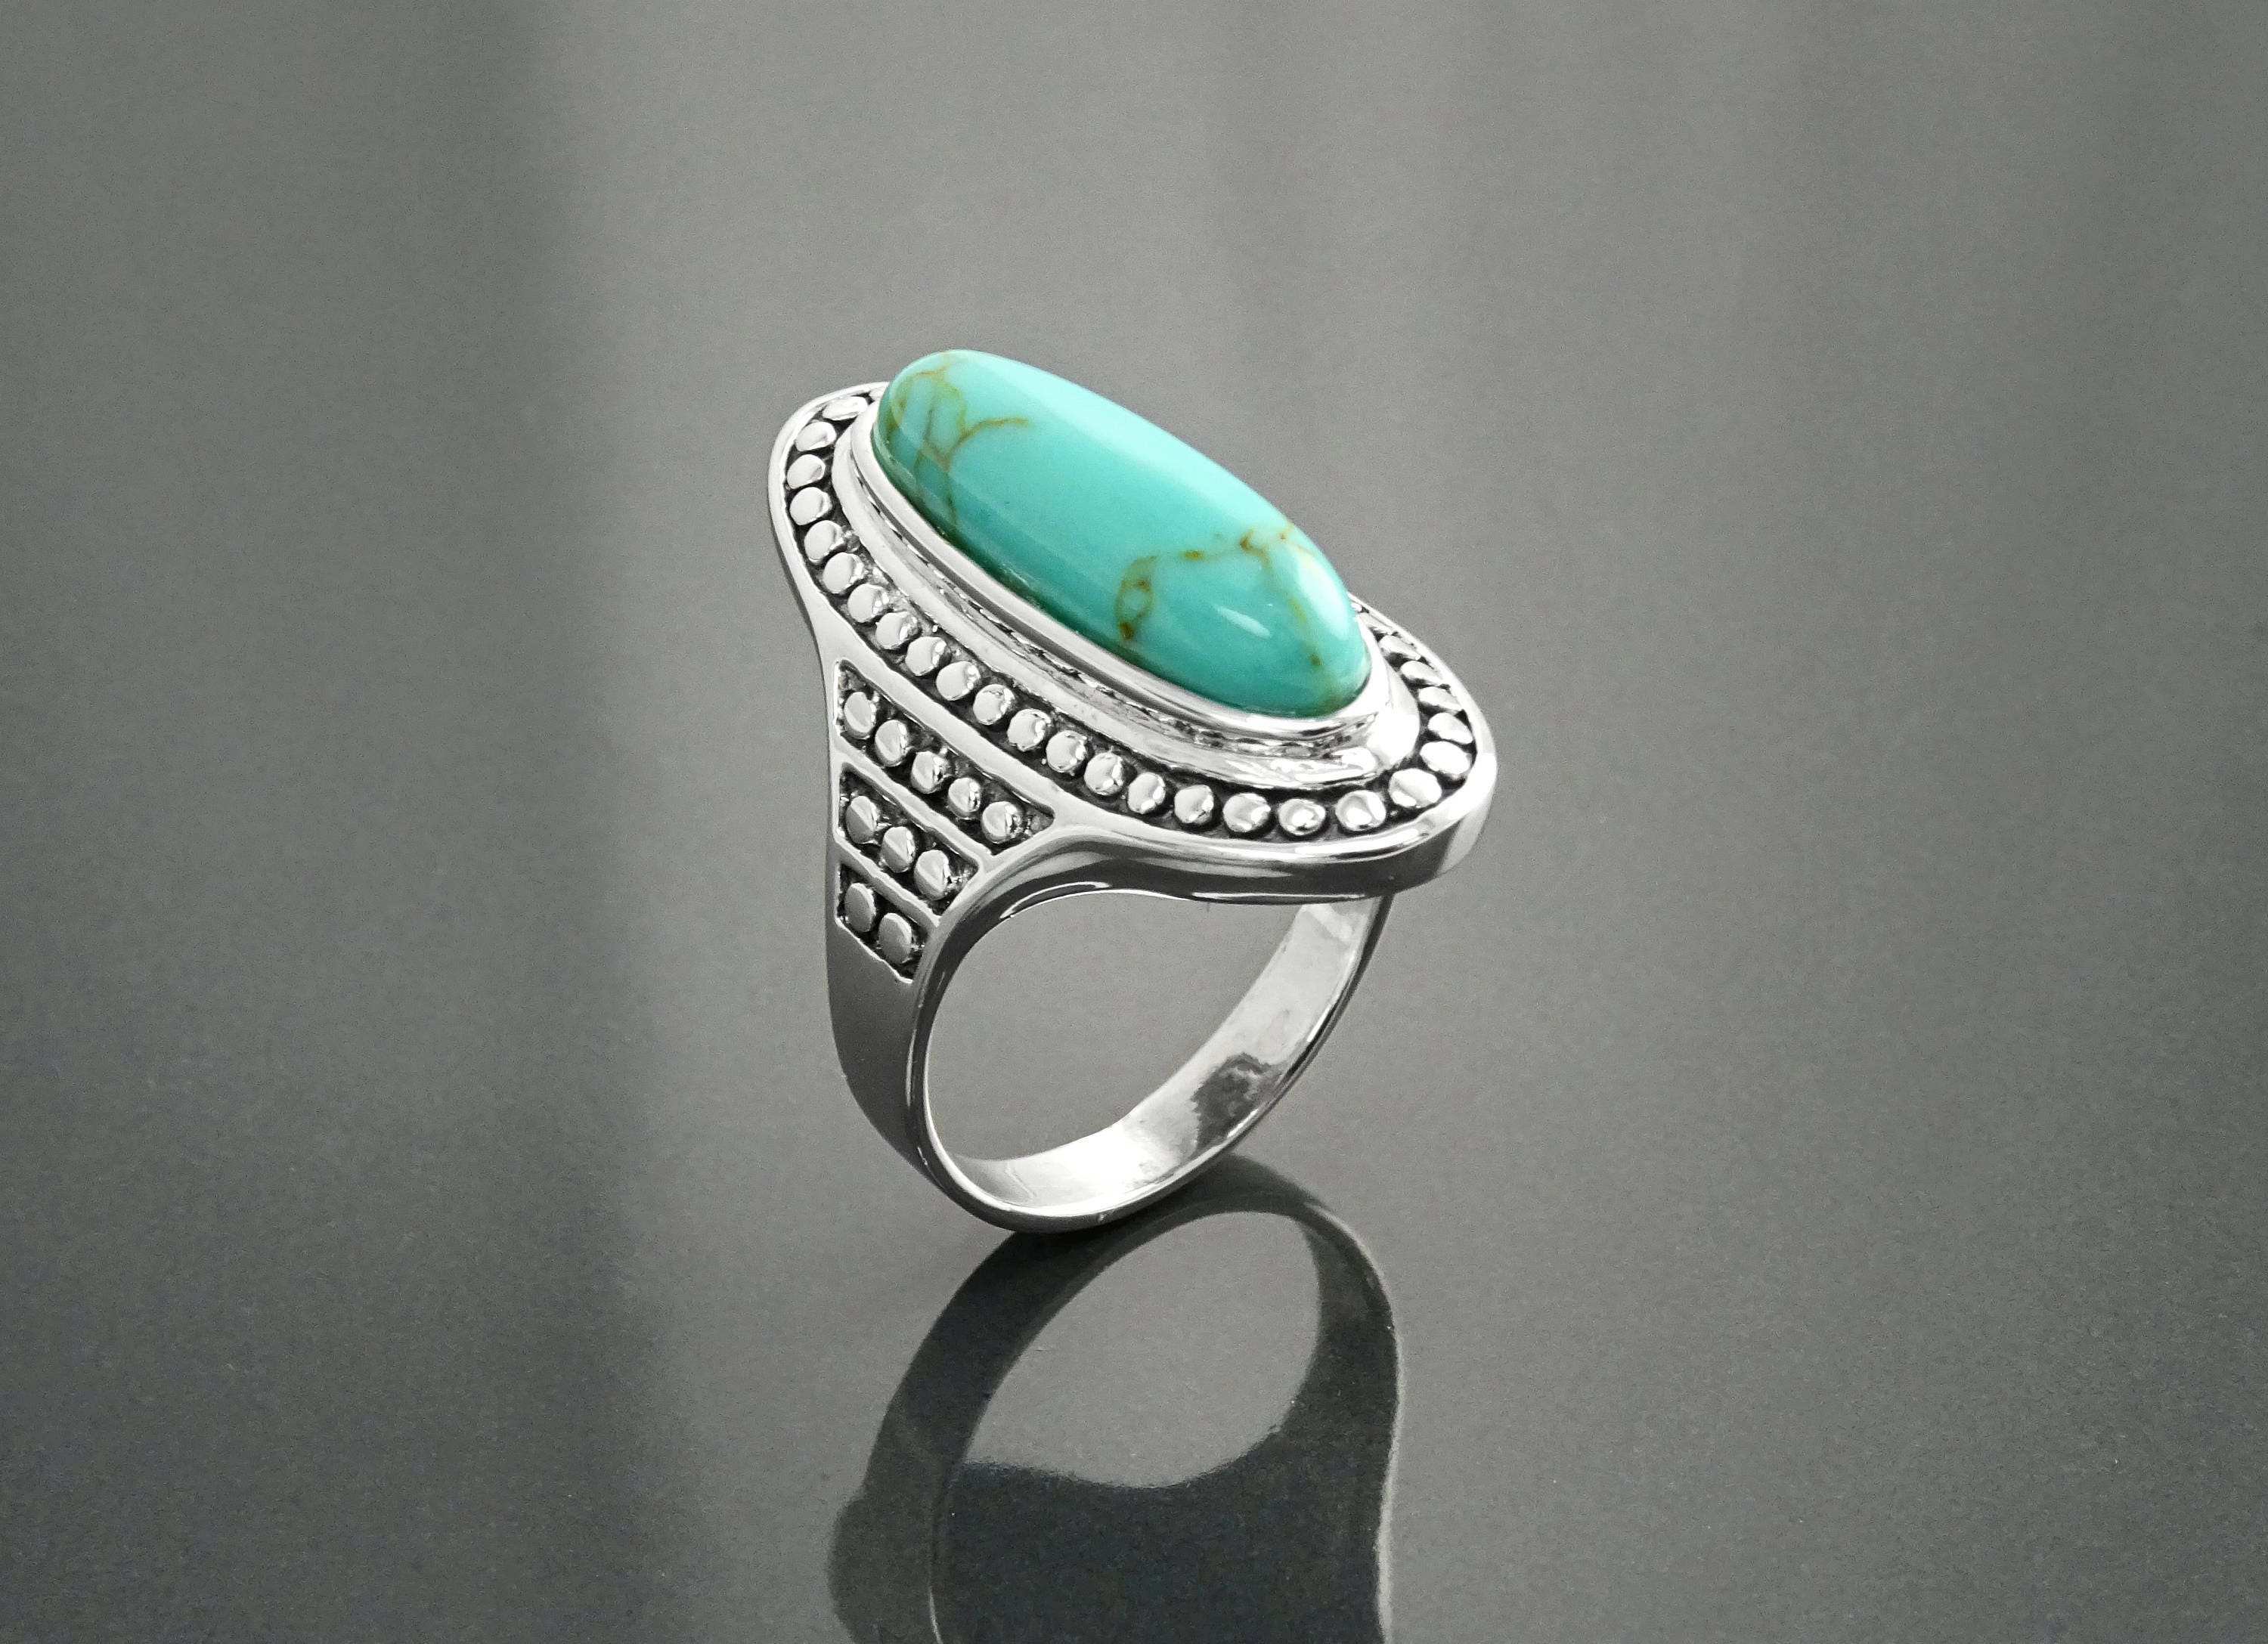 stone rings enamel turquoise jewellery los fine angeles leaf uk london reml maya modern ring